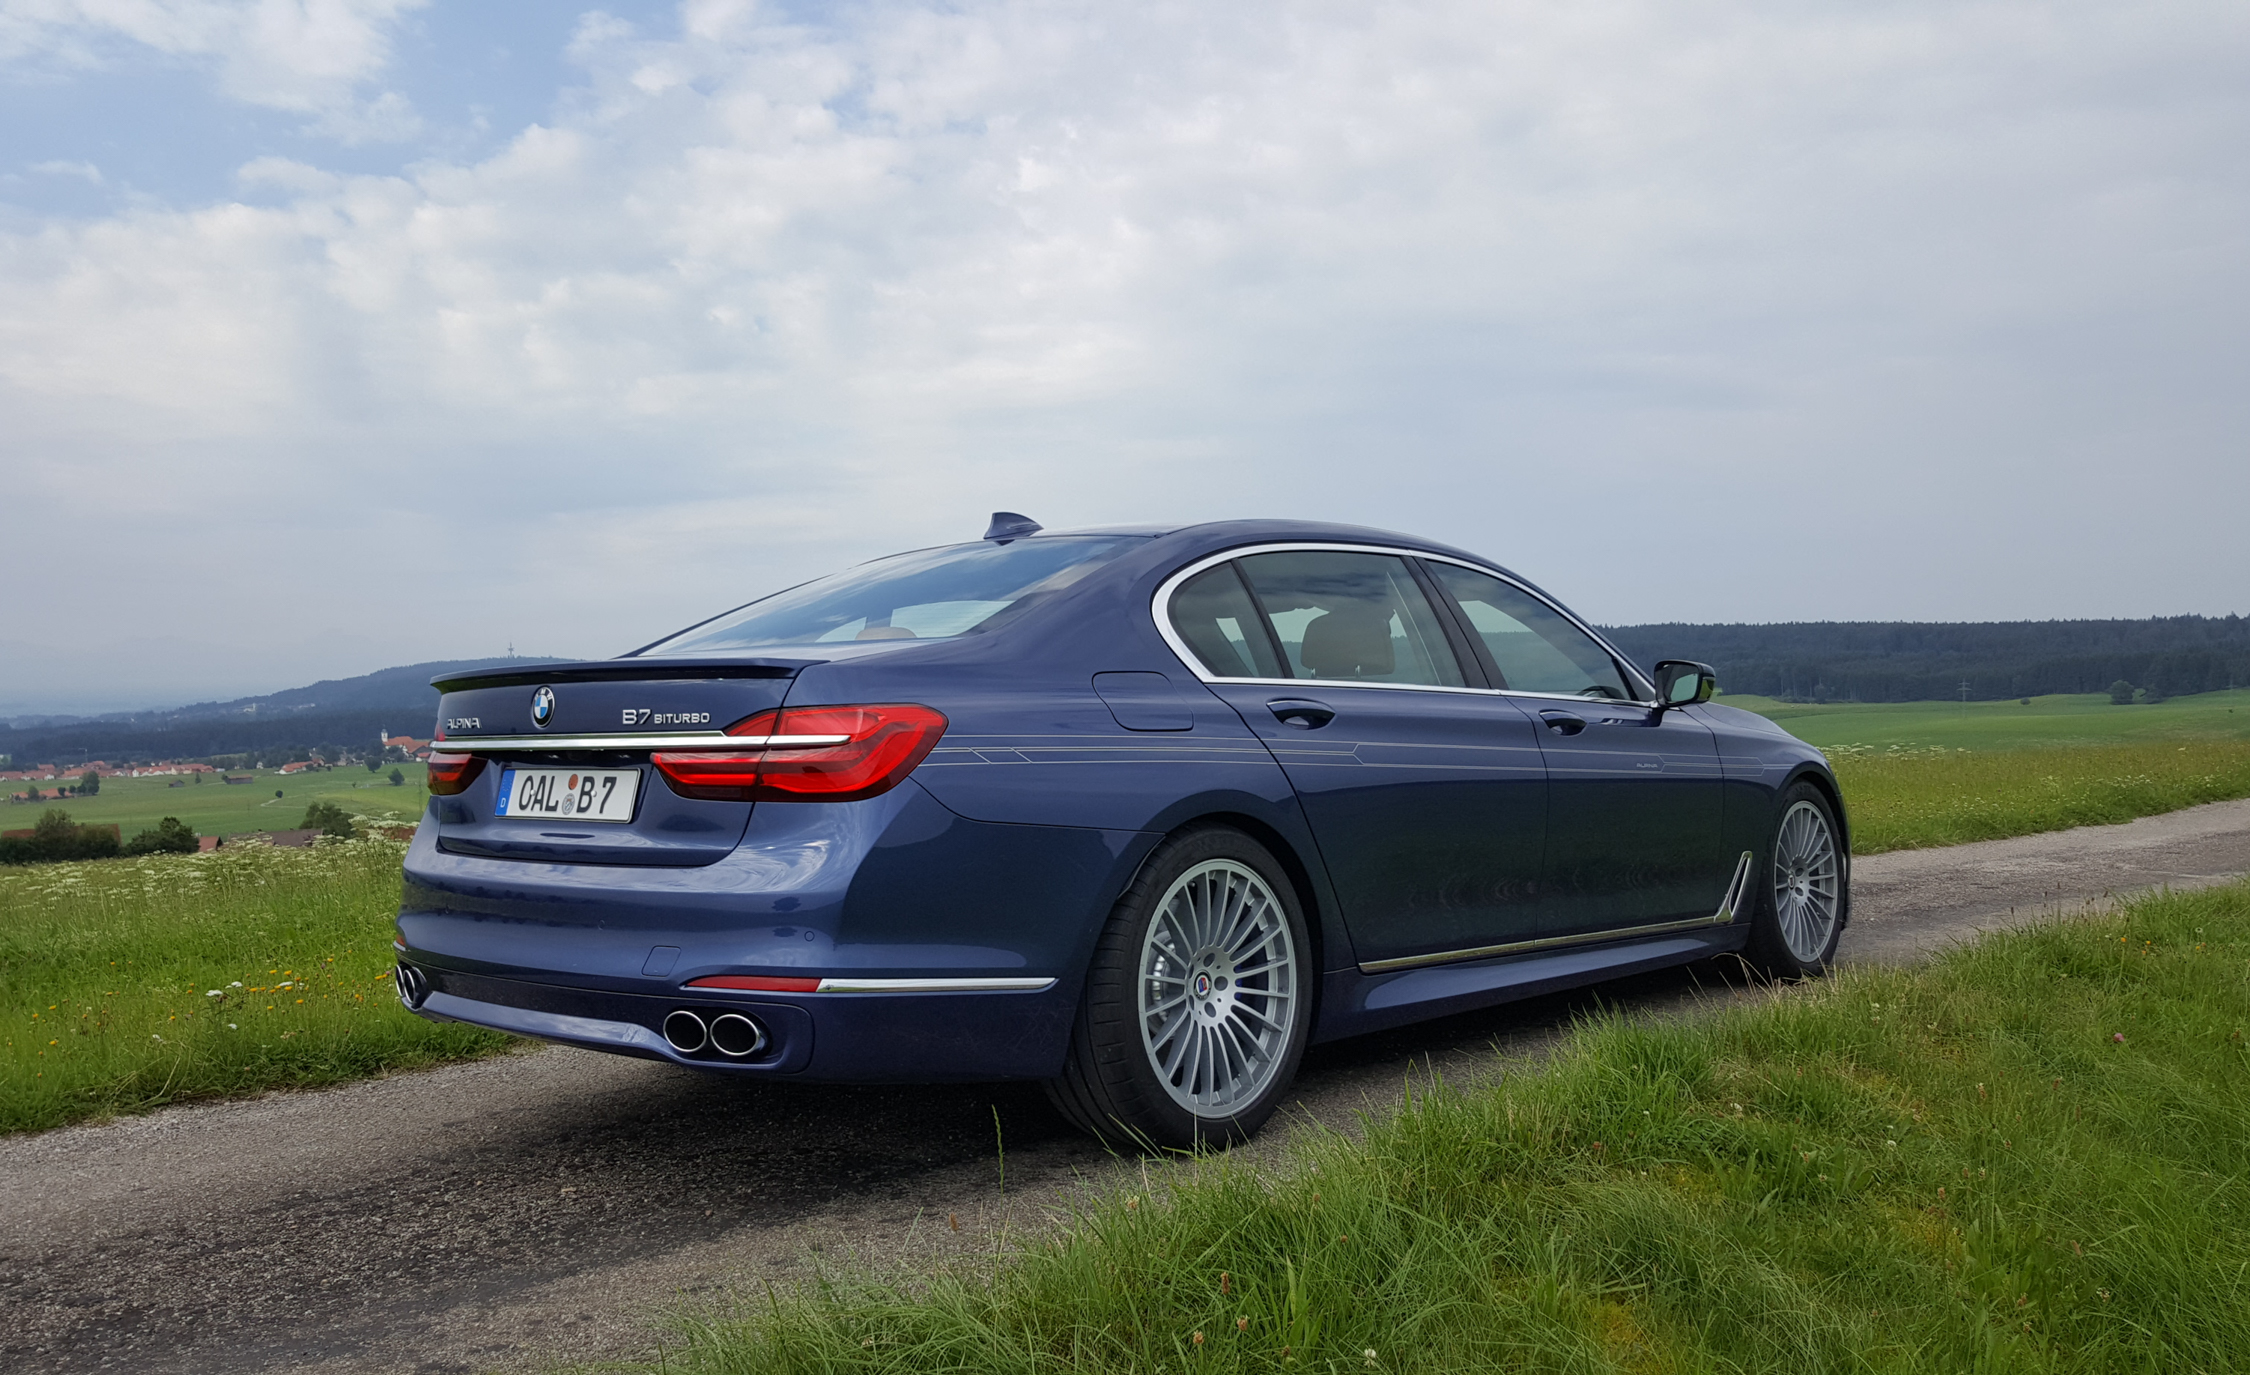 2017 BMW Alpina B7 Exterior Side (View 37 of 45)